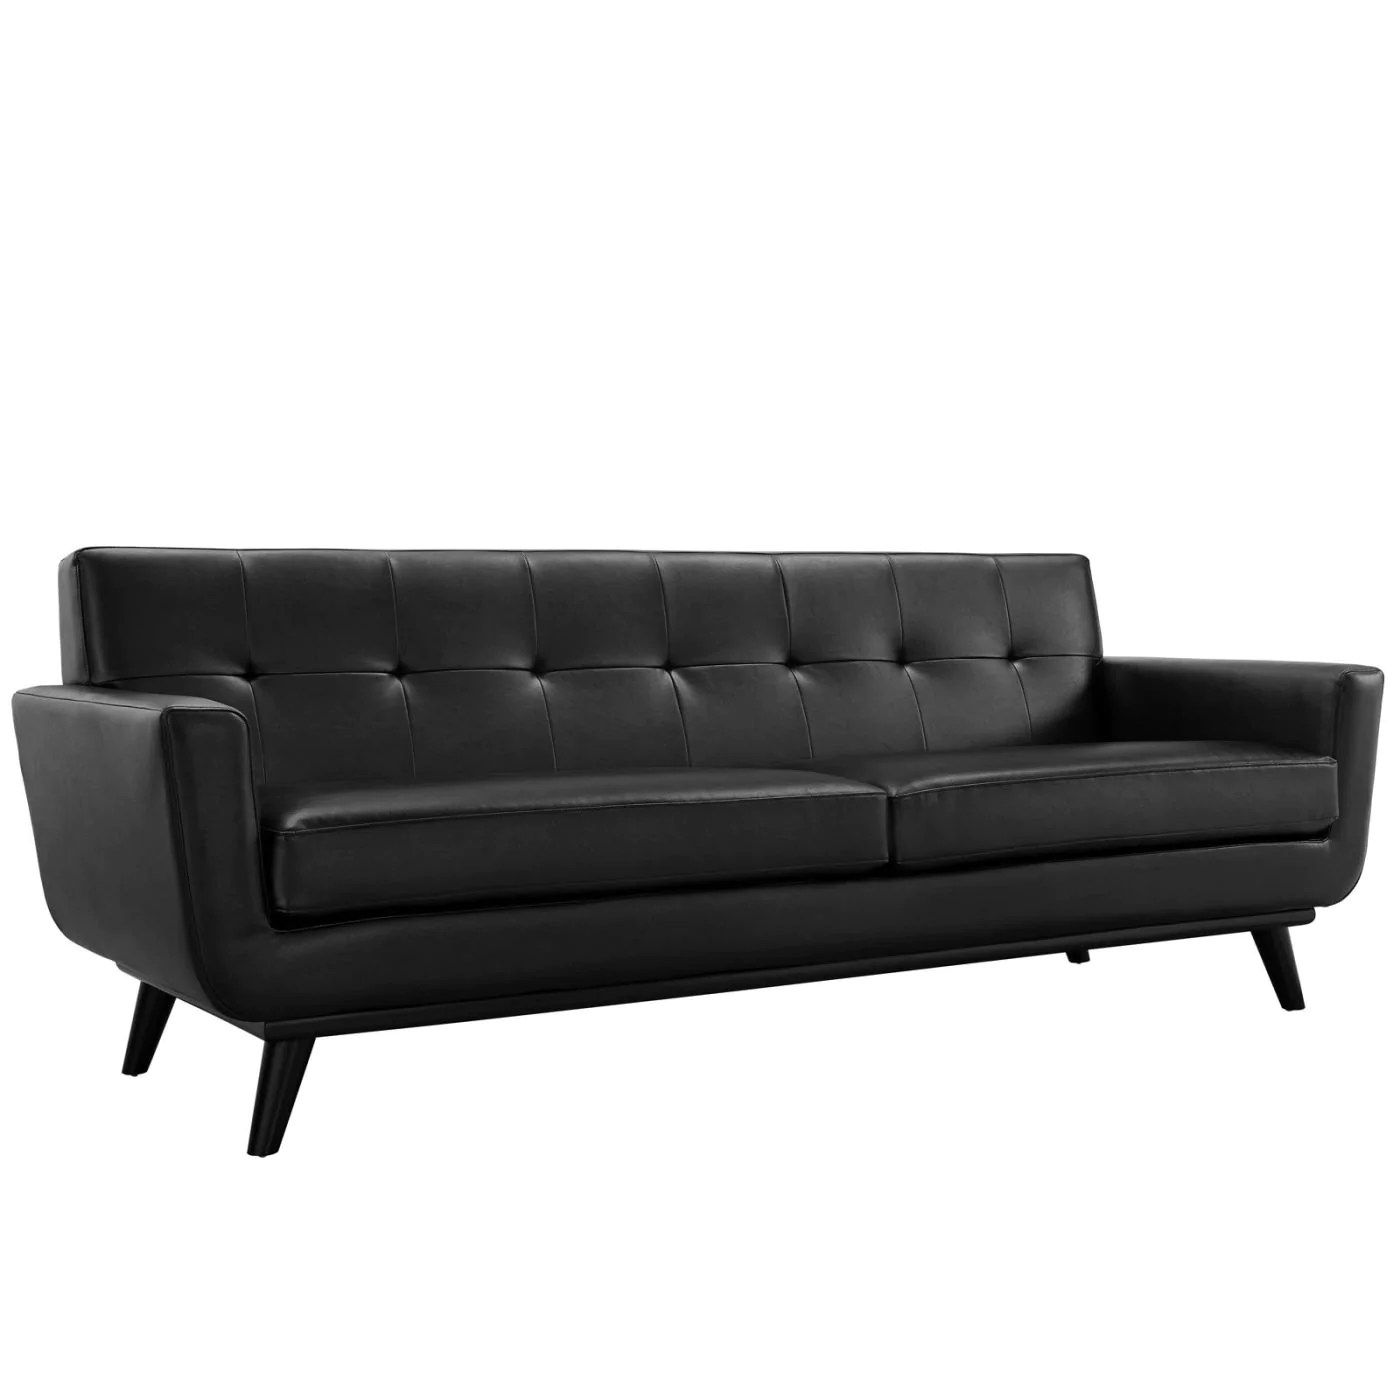 4087 modern bonded leather sectional sofa with recliners harlequin corner furniture village modway sofas on sale eei 1338 blk engage mid century